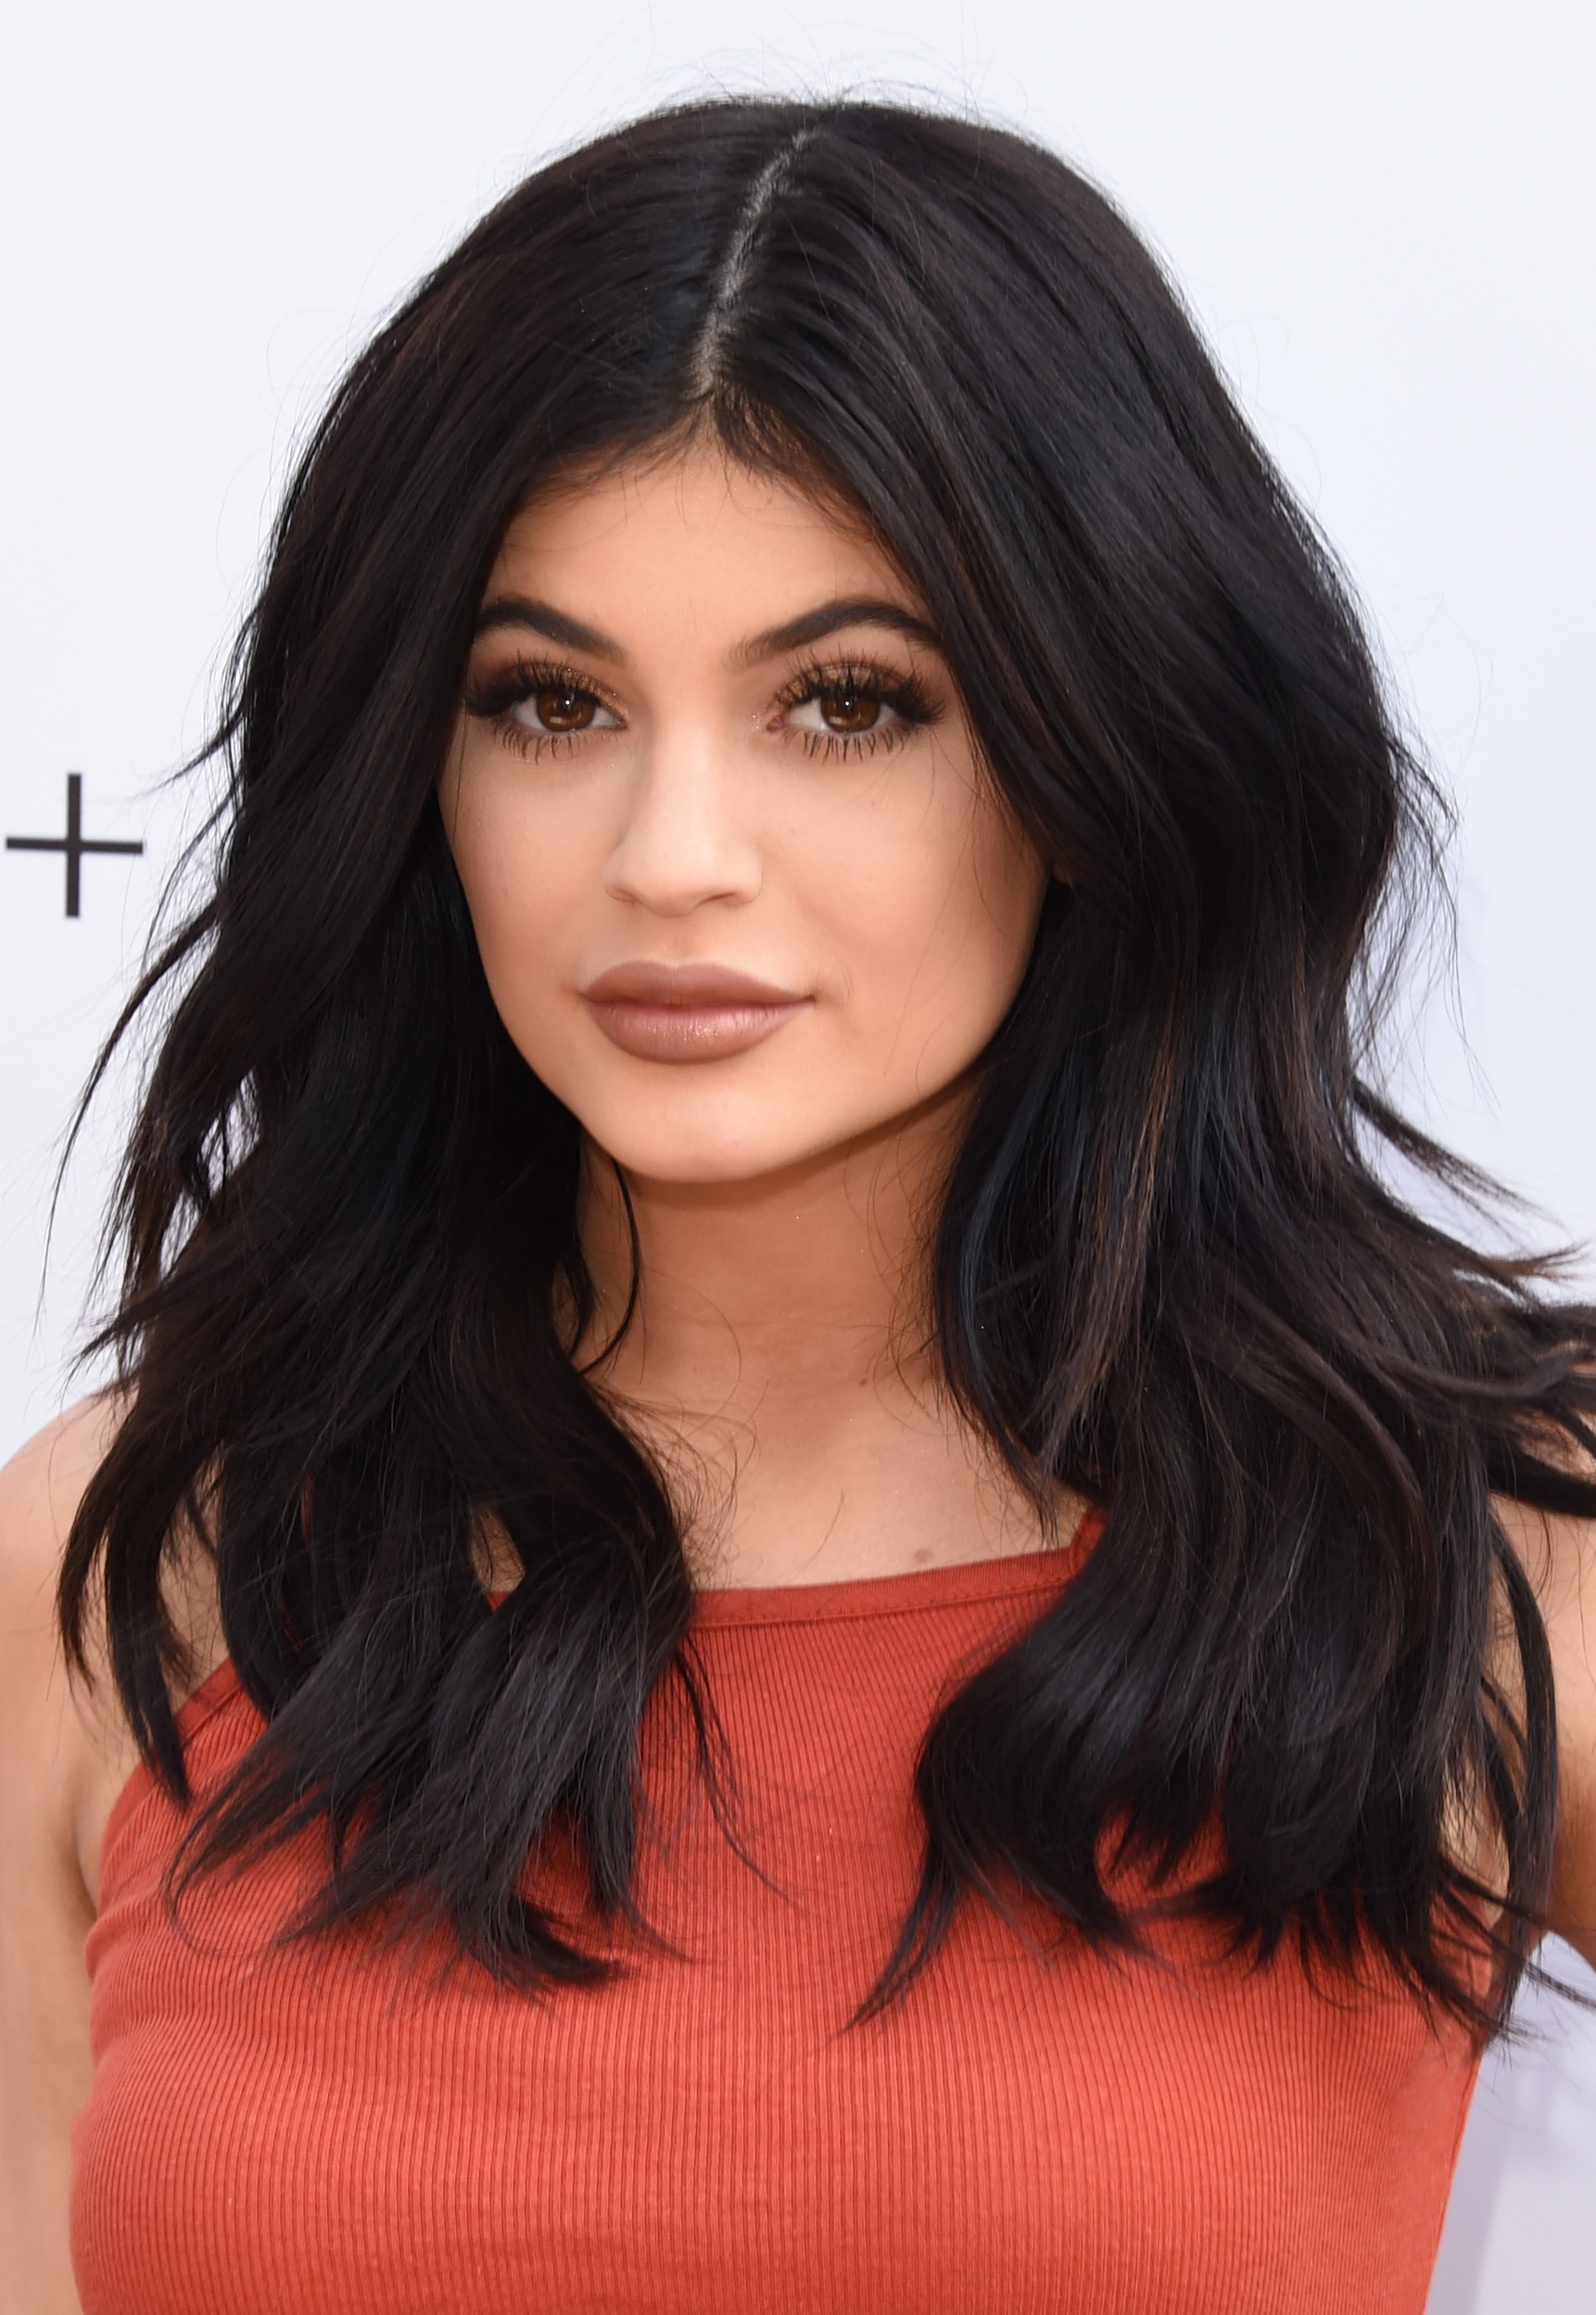 New Kylie Jenner Website Will Feature Tutorials So You Can Get Her Makeup Look (Hopefully Without A Shot Glass)